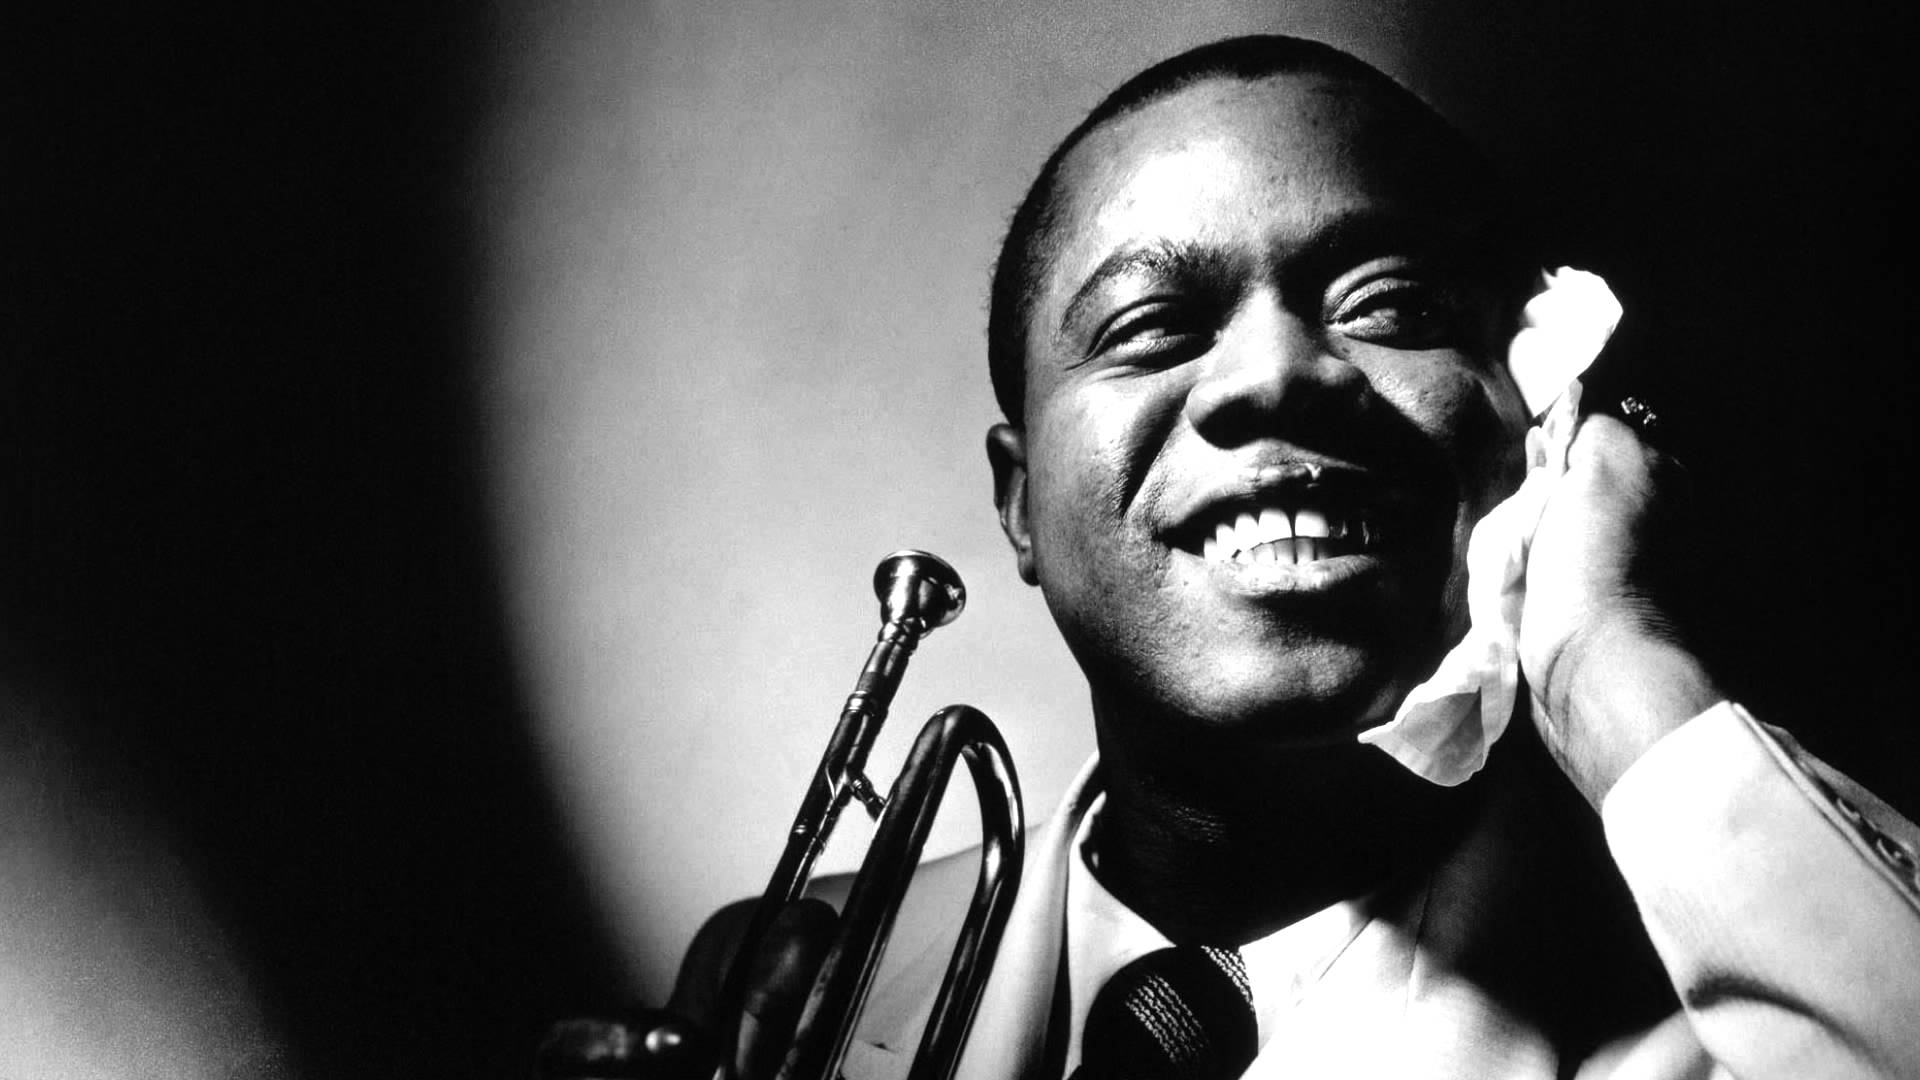 Louis Armstrong Wallpapers | Celebrities Wallpapers Gallery - PC ...